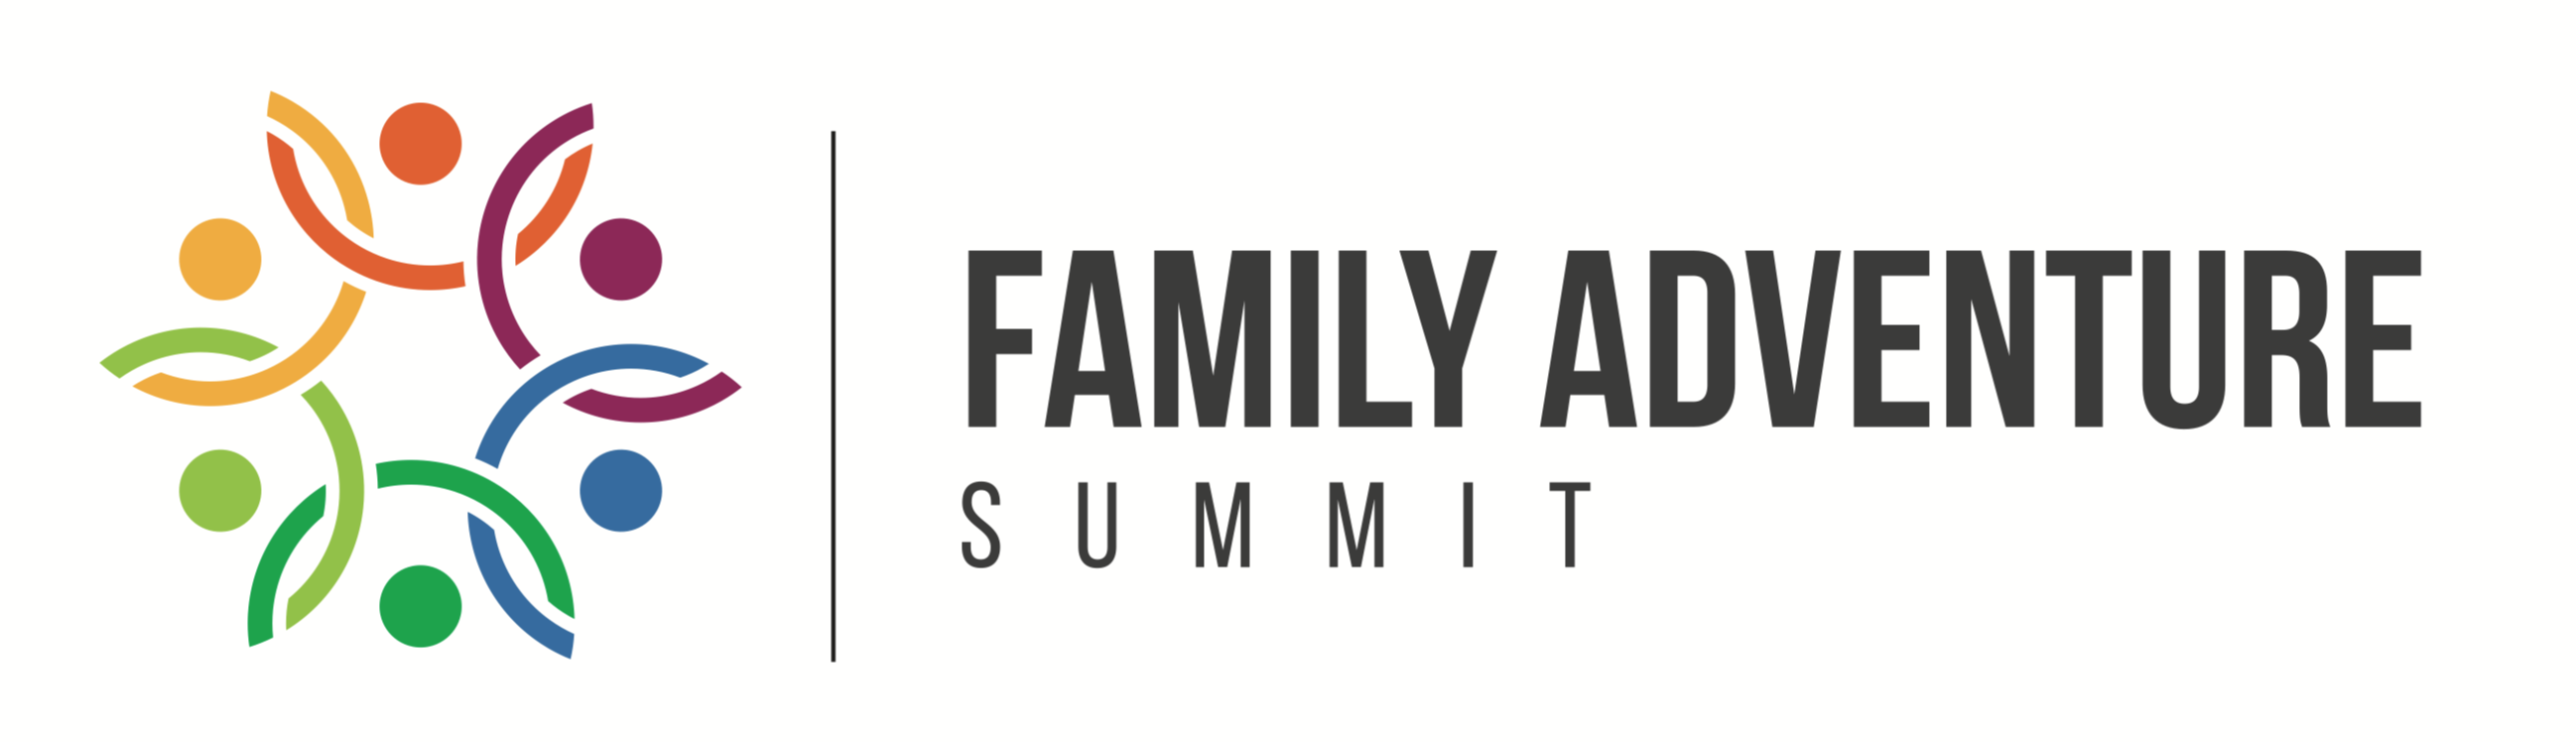 The Family Adventure Summit